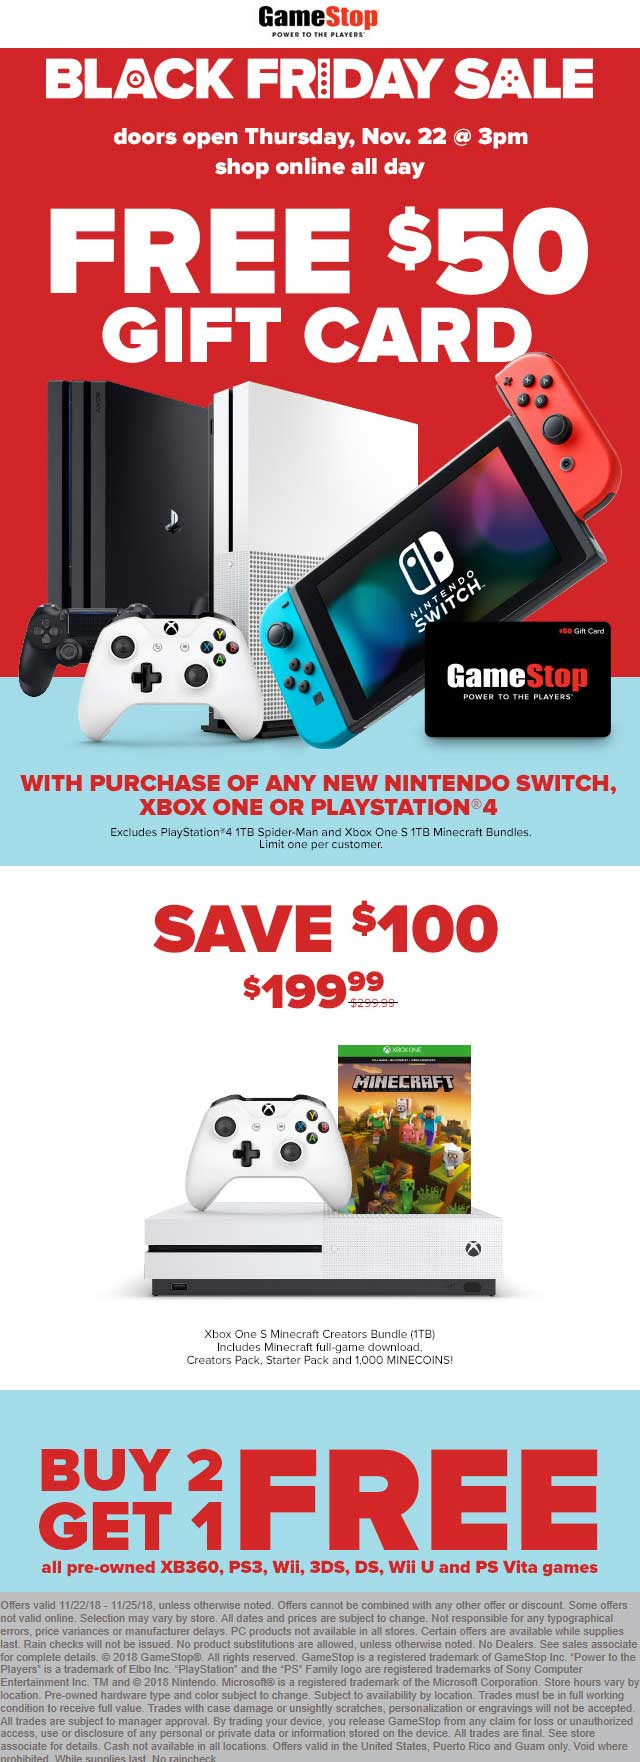 GameStop Coupon July 2019 Free $50 gift card with your console & $199 Xbox One S Minecraft at GameStop, ditto online